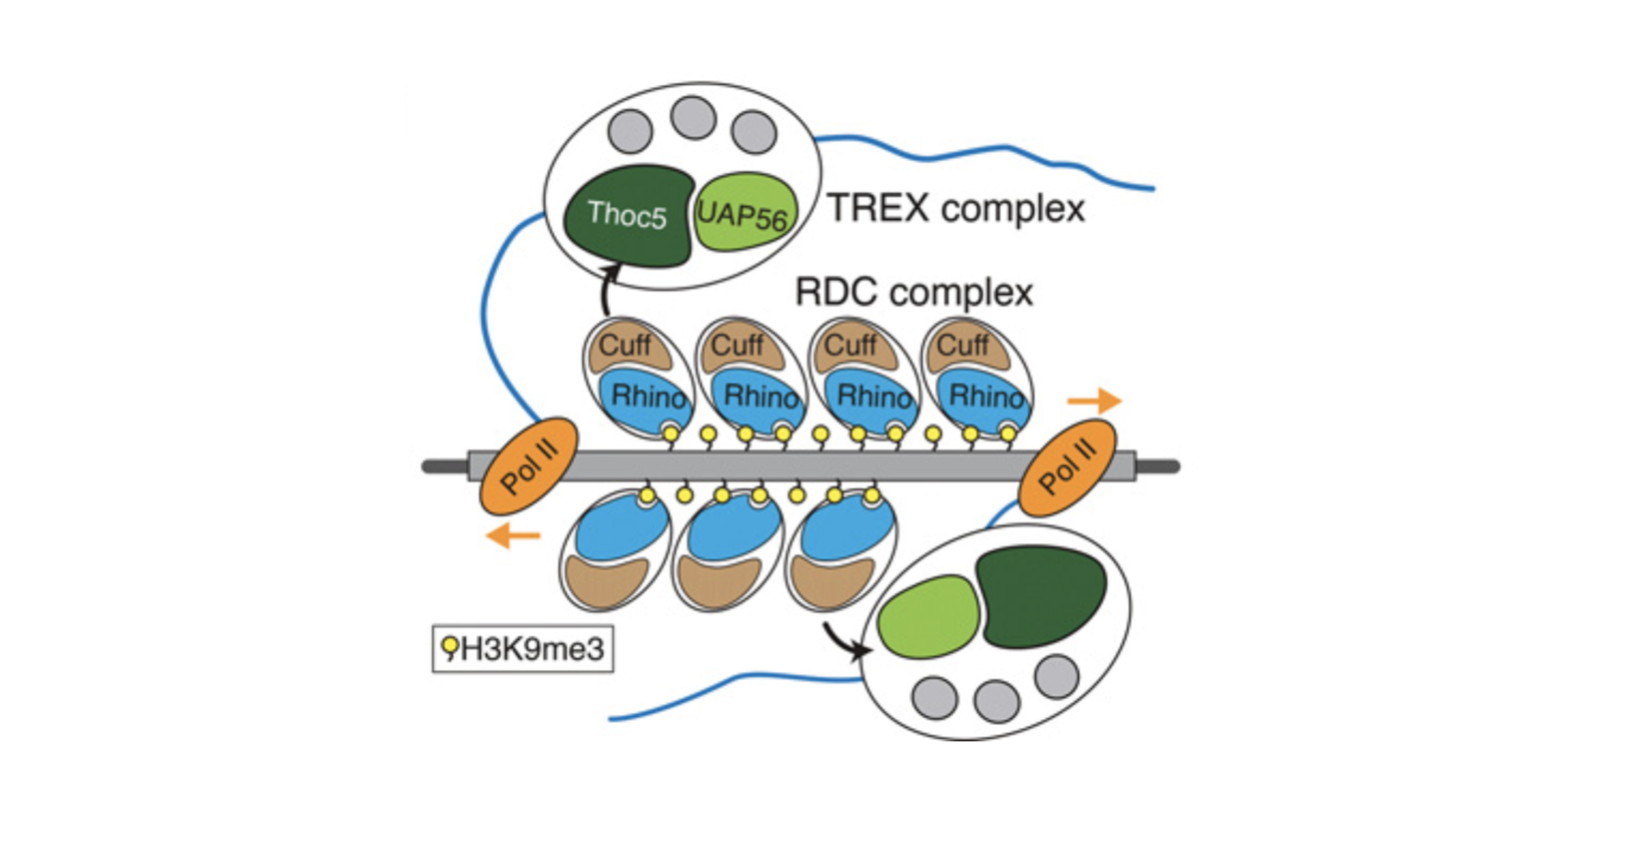 A model of TREX recruitment and loading on piRNA cluster transcripts. (Hur et al., 2016)